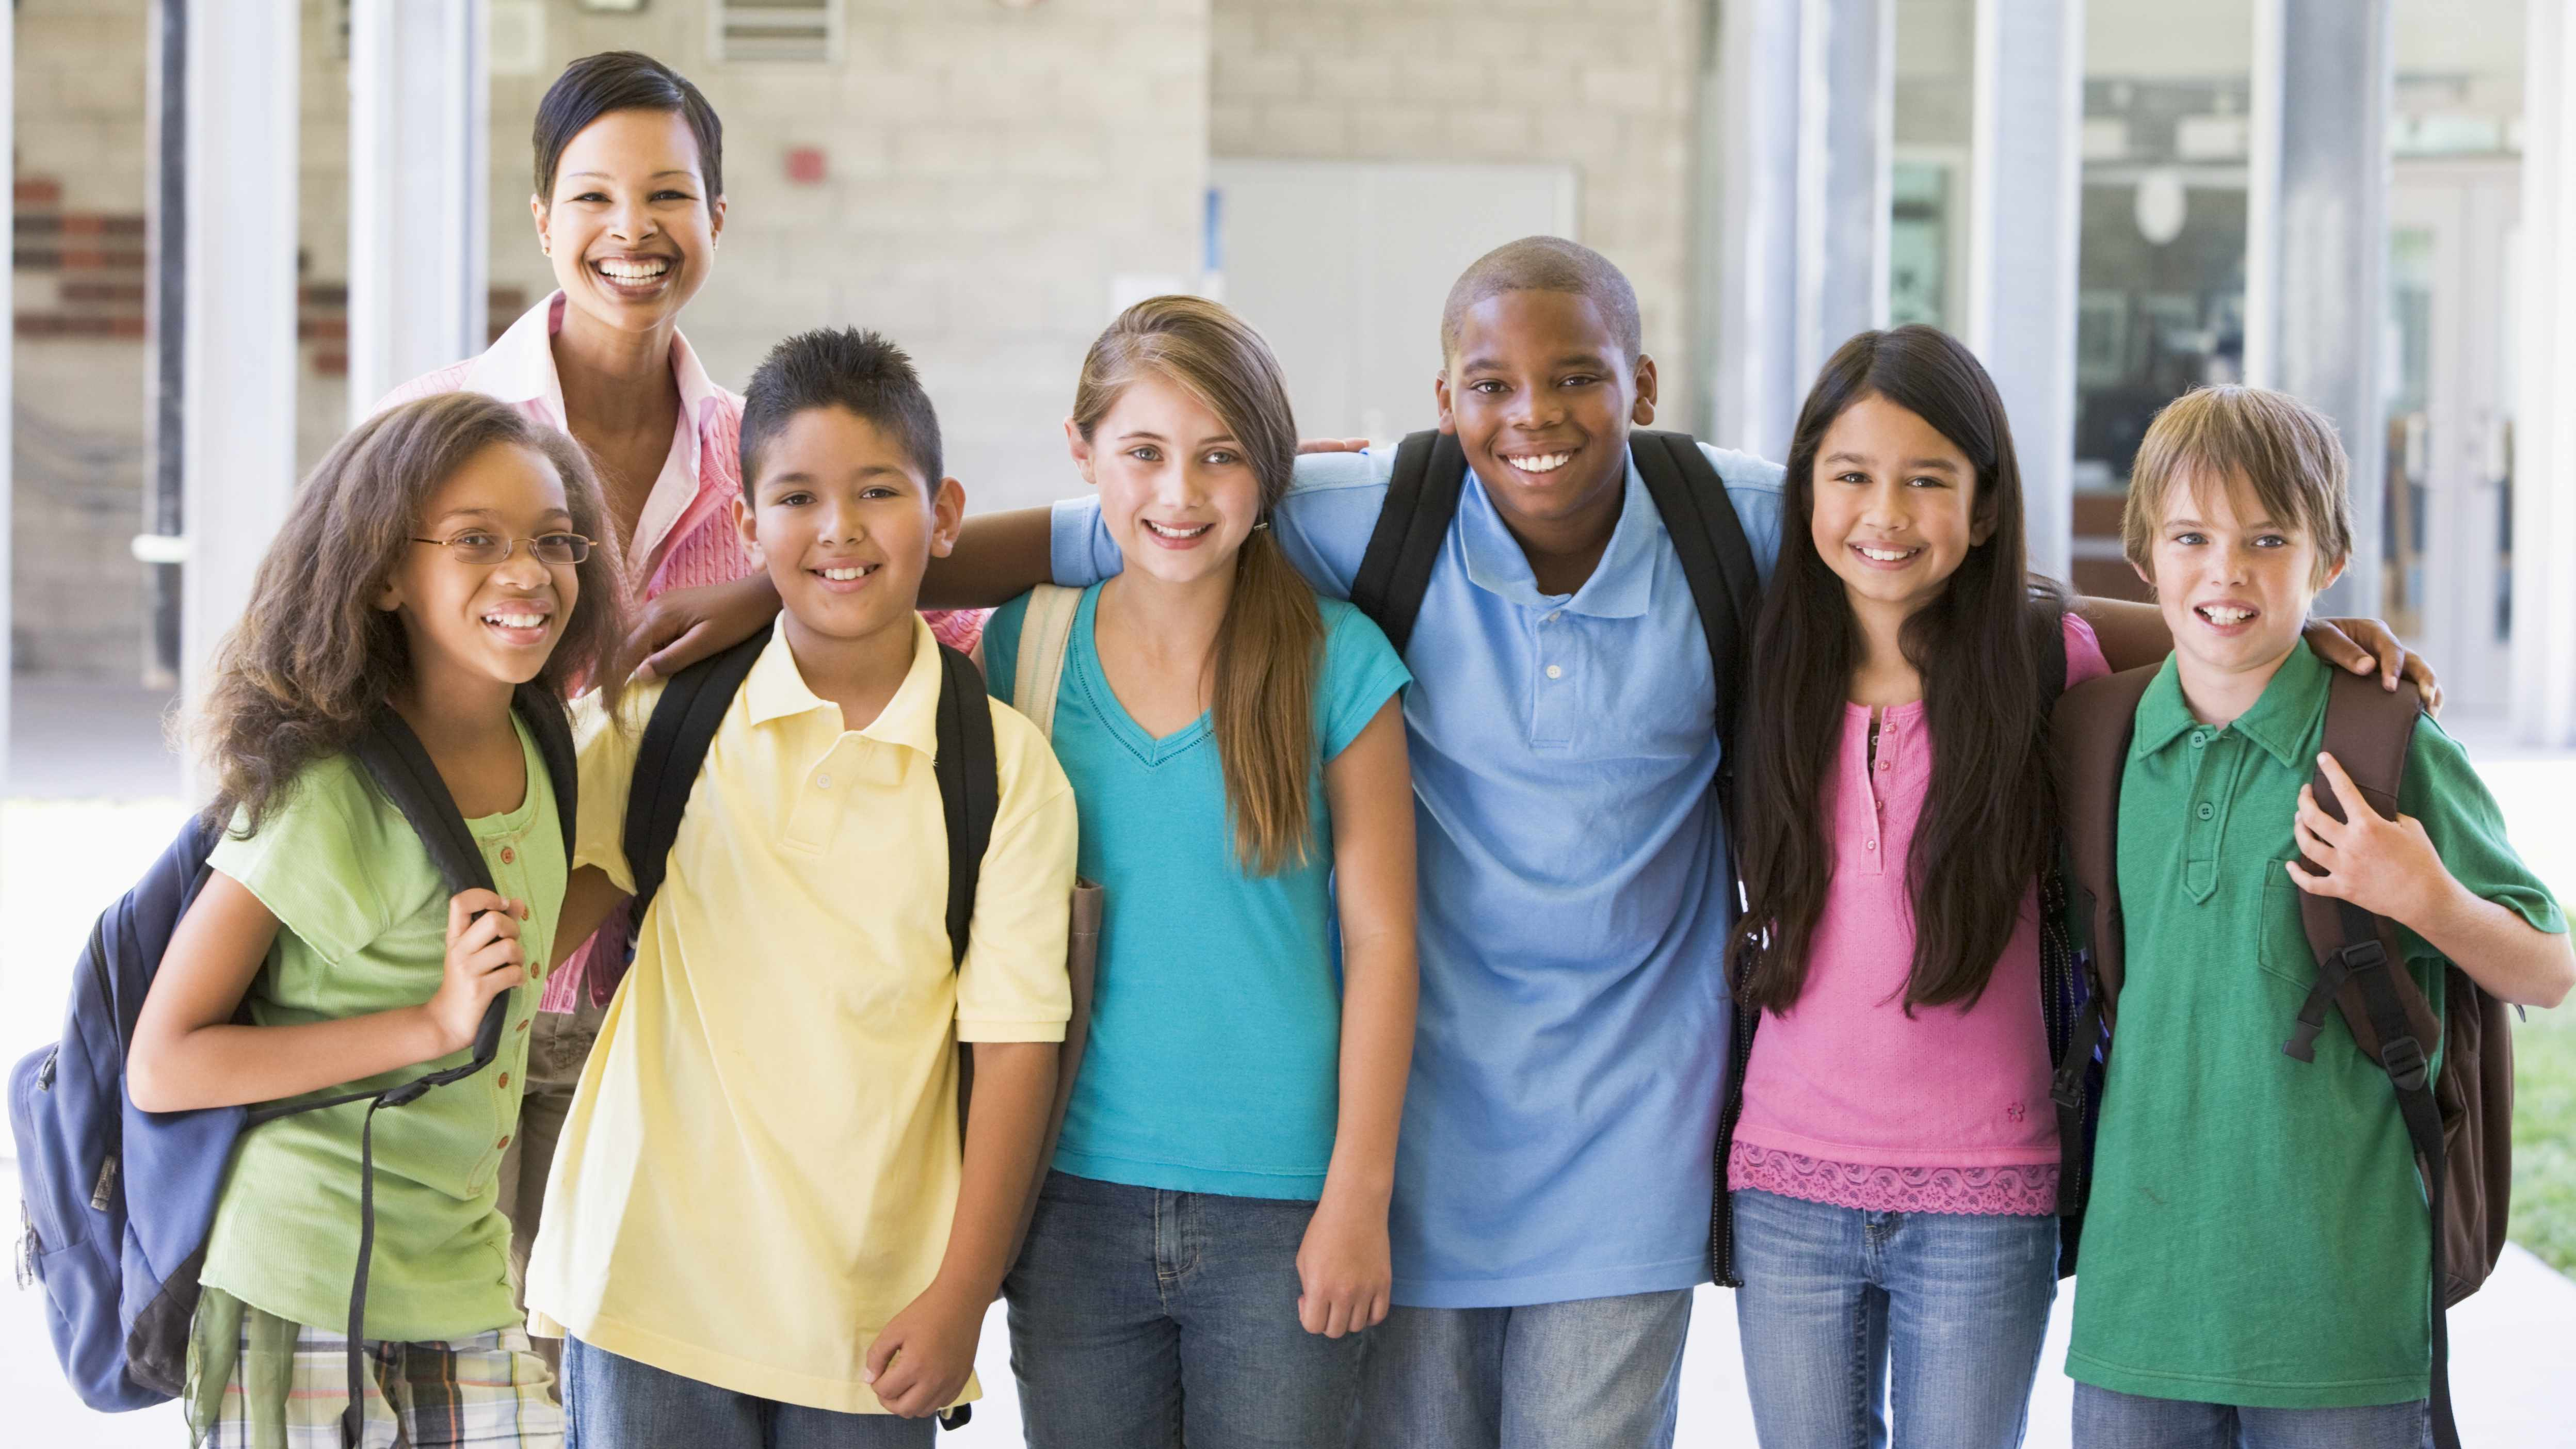 Mayo Clinic Q And A Hpv Vaccination Series Can Be Started At Age 9 Mayo Clinic News Network